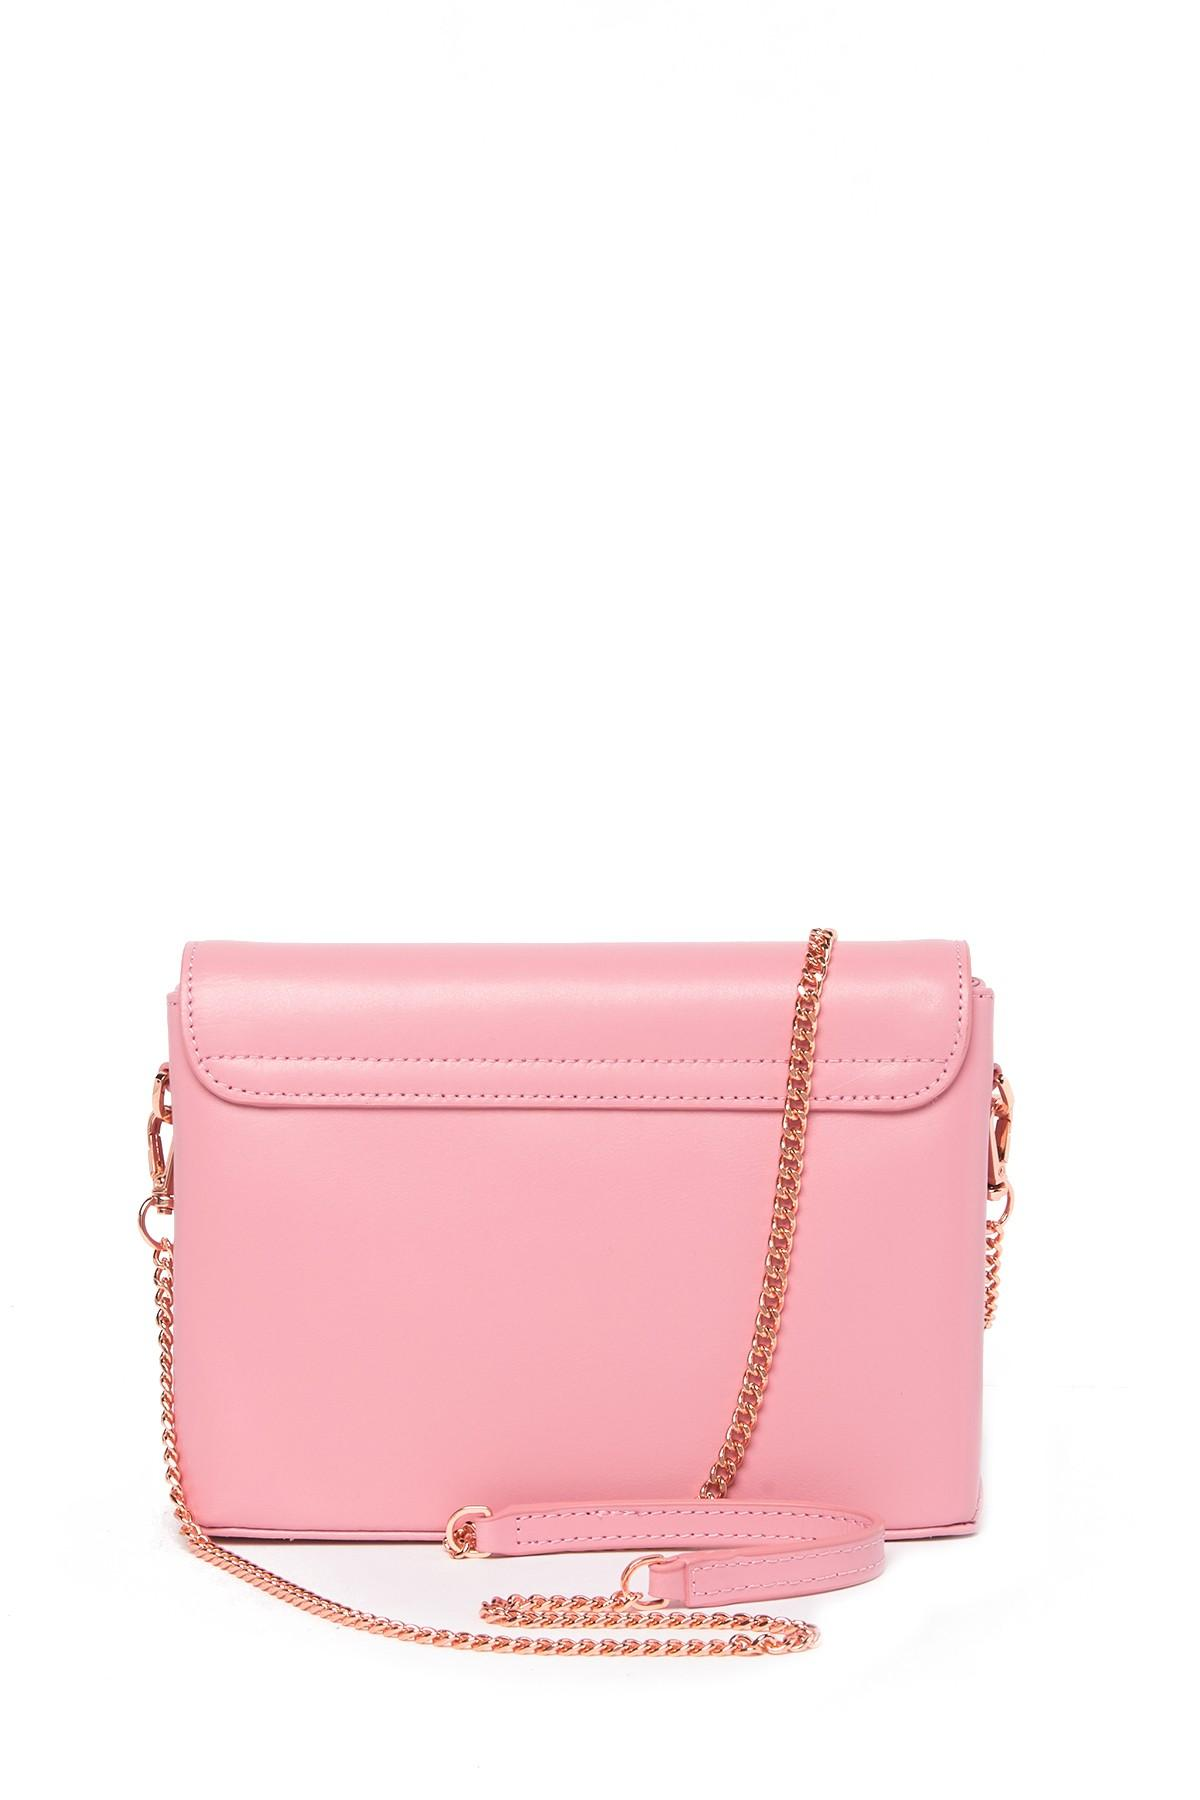 116d3de23 Lyst - Ted Baker Moniica Crystal Bar Leather Crossbody Bag in Pink